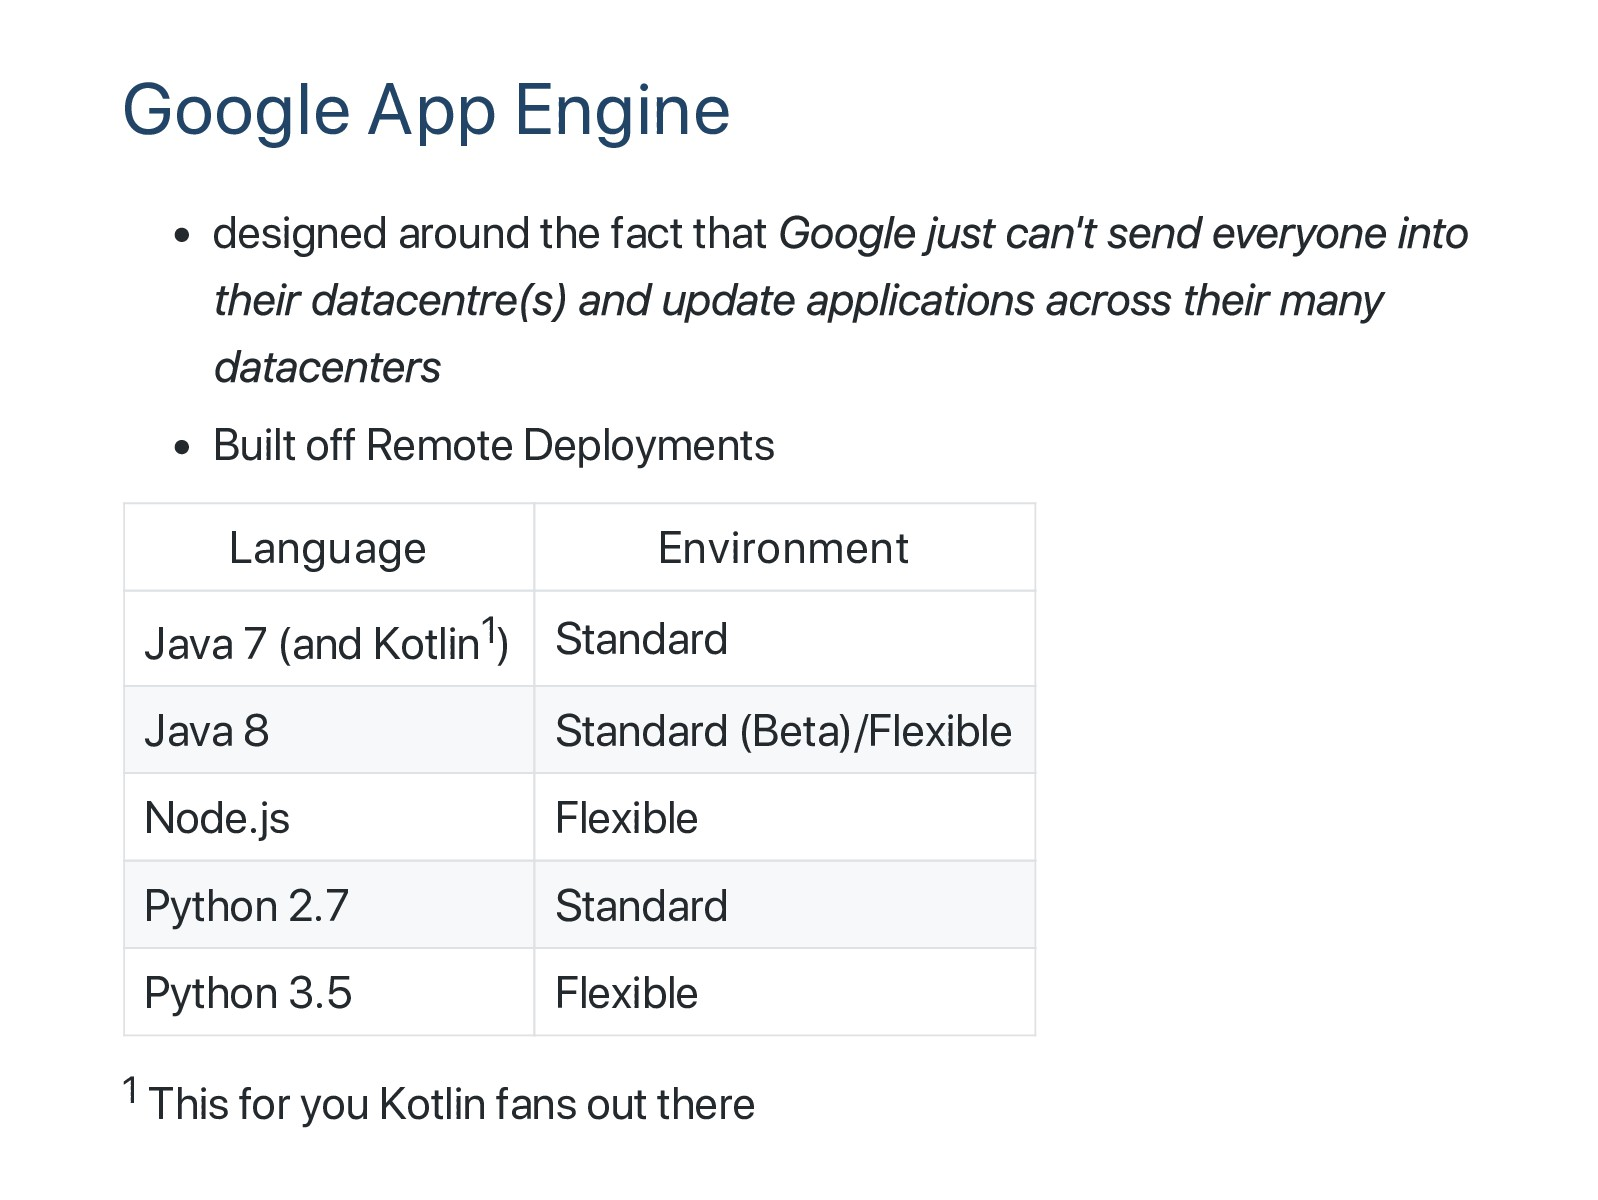 Google App Engine designed around the fact that...